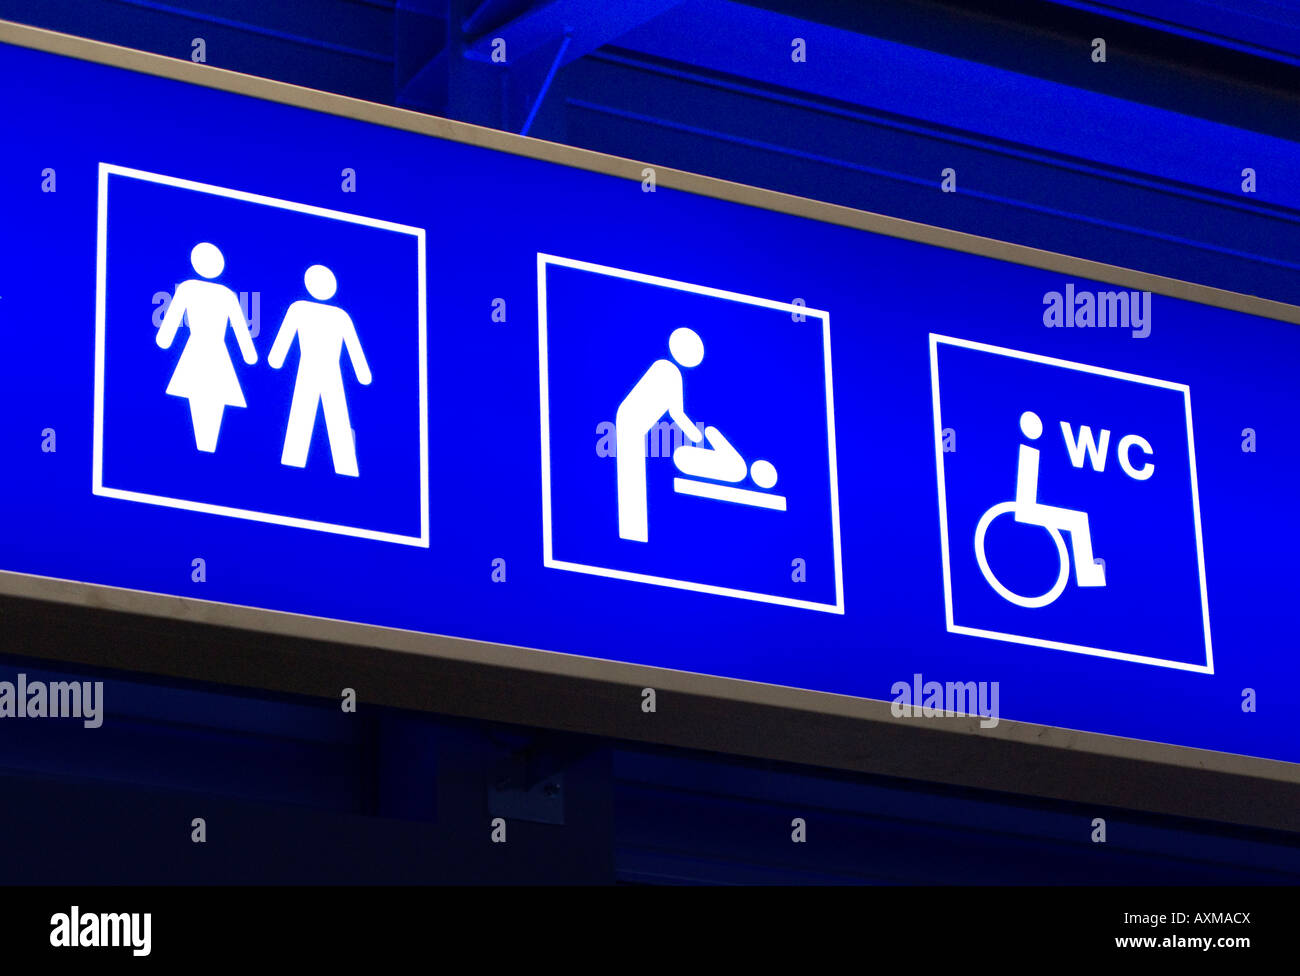 Sign showing different toilet facilities at airport. - Stock Image